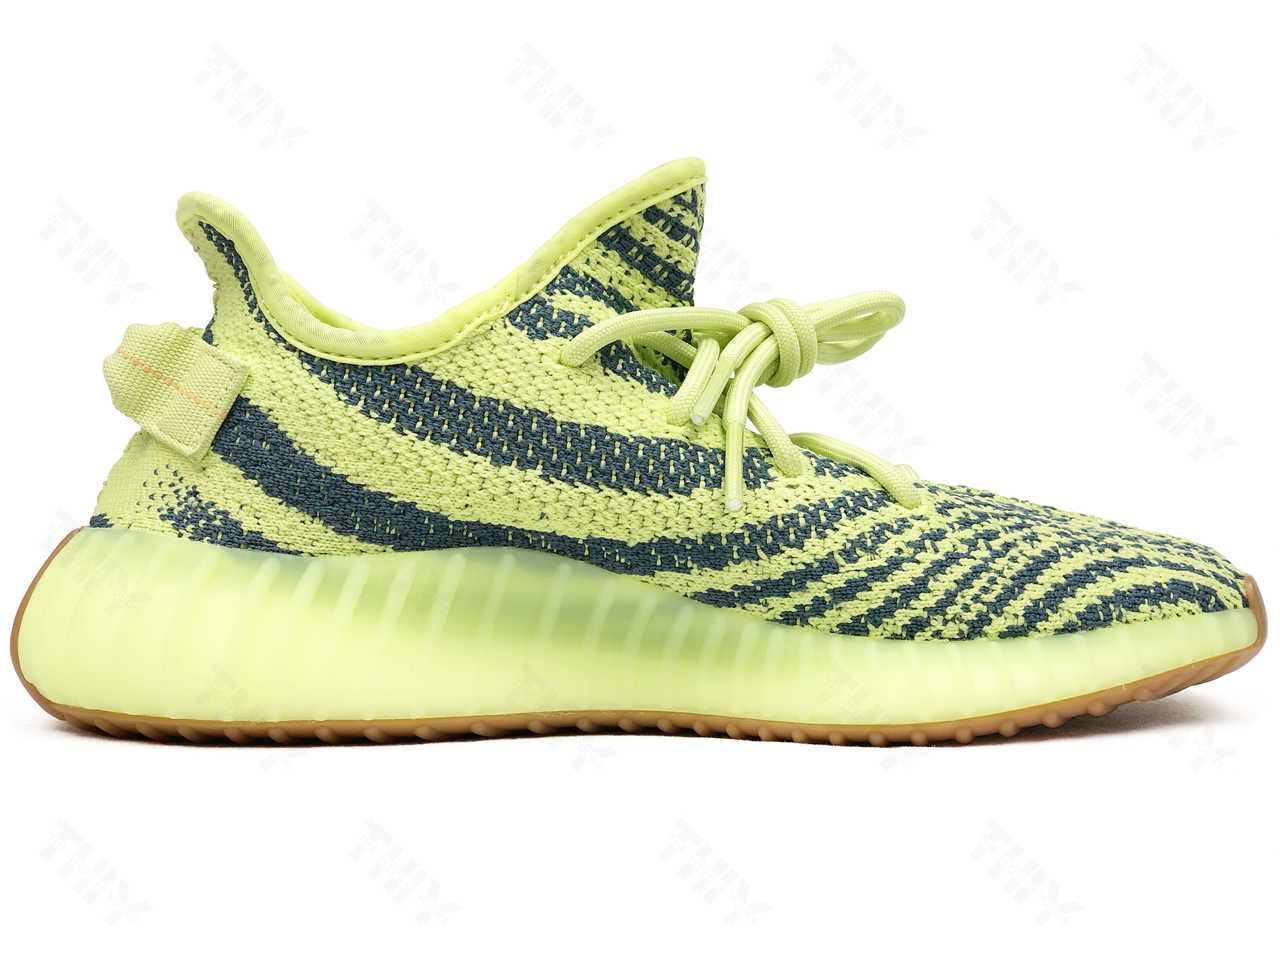 size 40 f8526 98af3 ADIDAS YEEZY BOOST 350 V2 SEMI FROZEN YELLOW